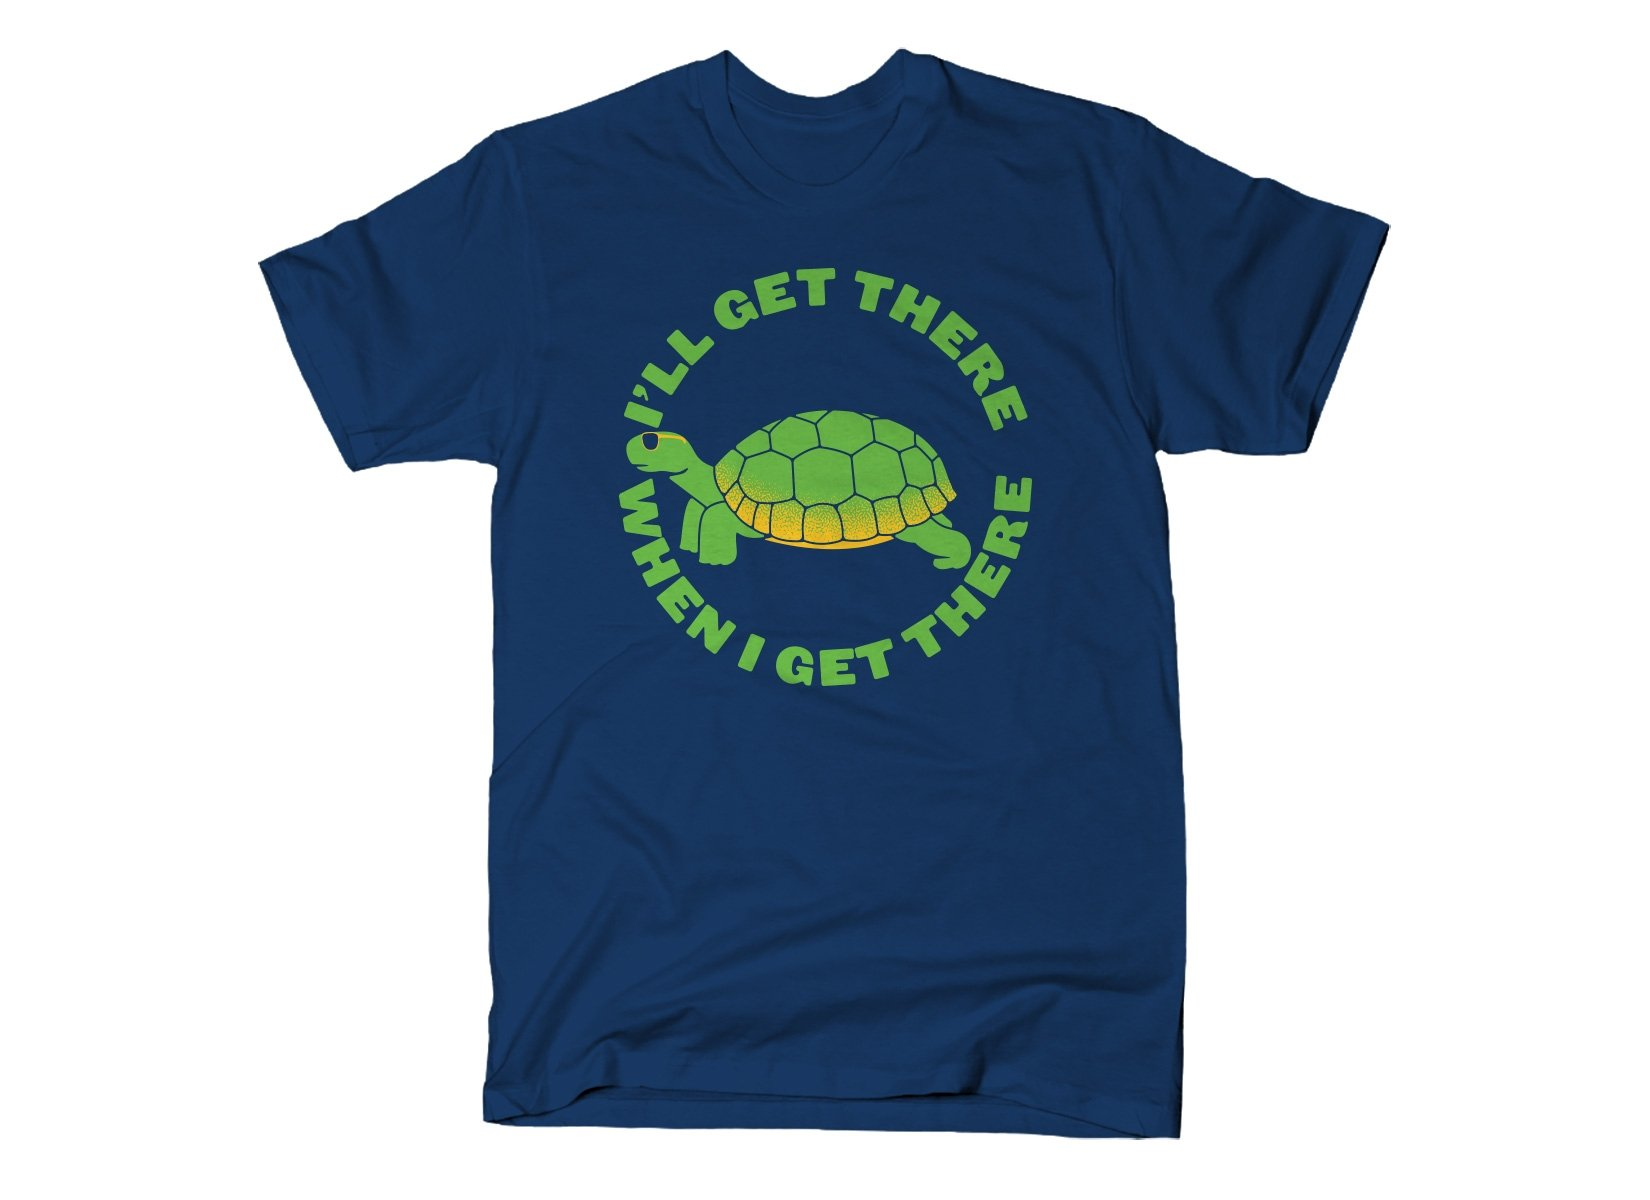 I'll Get There When I Get There on Mens T-Shirt